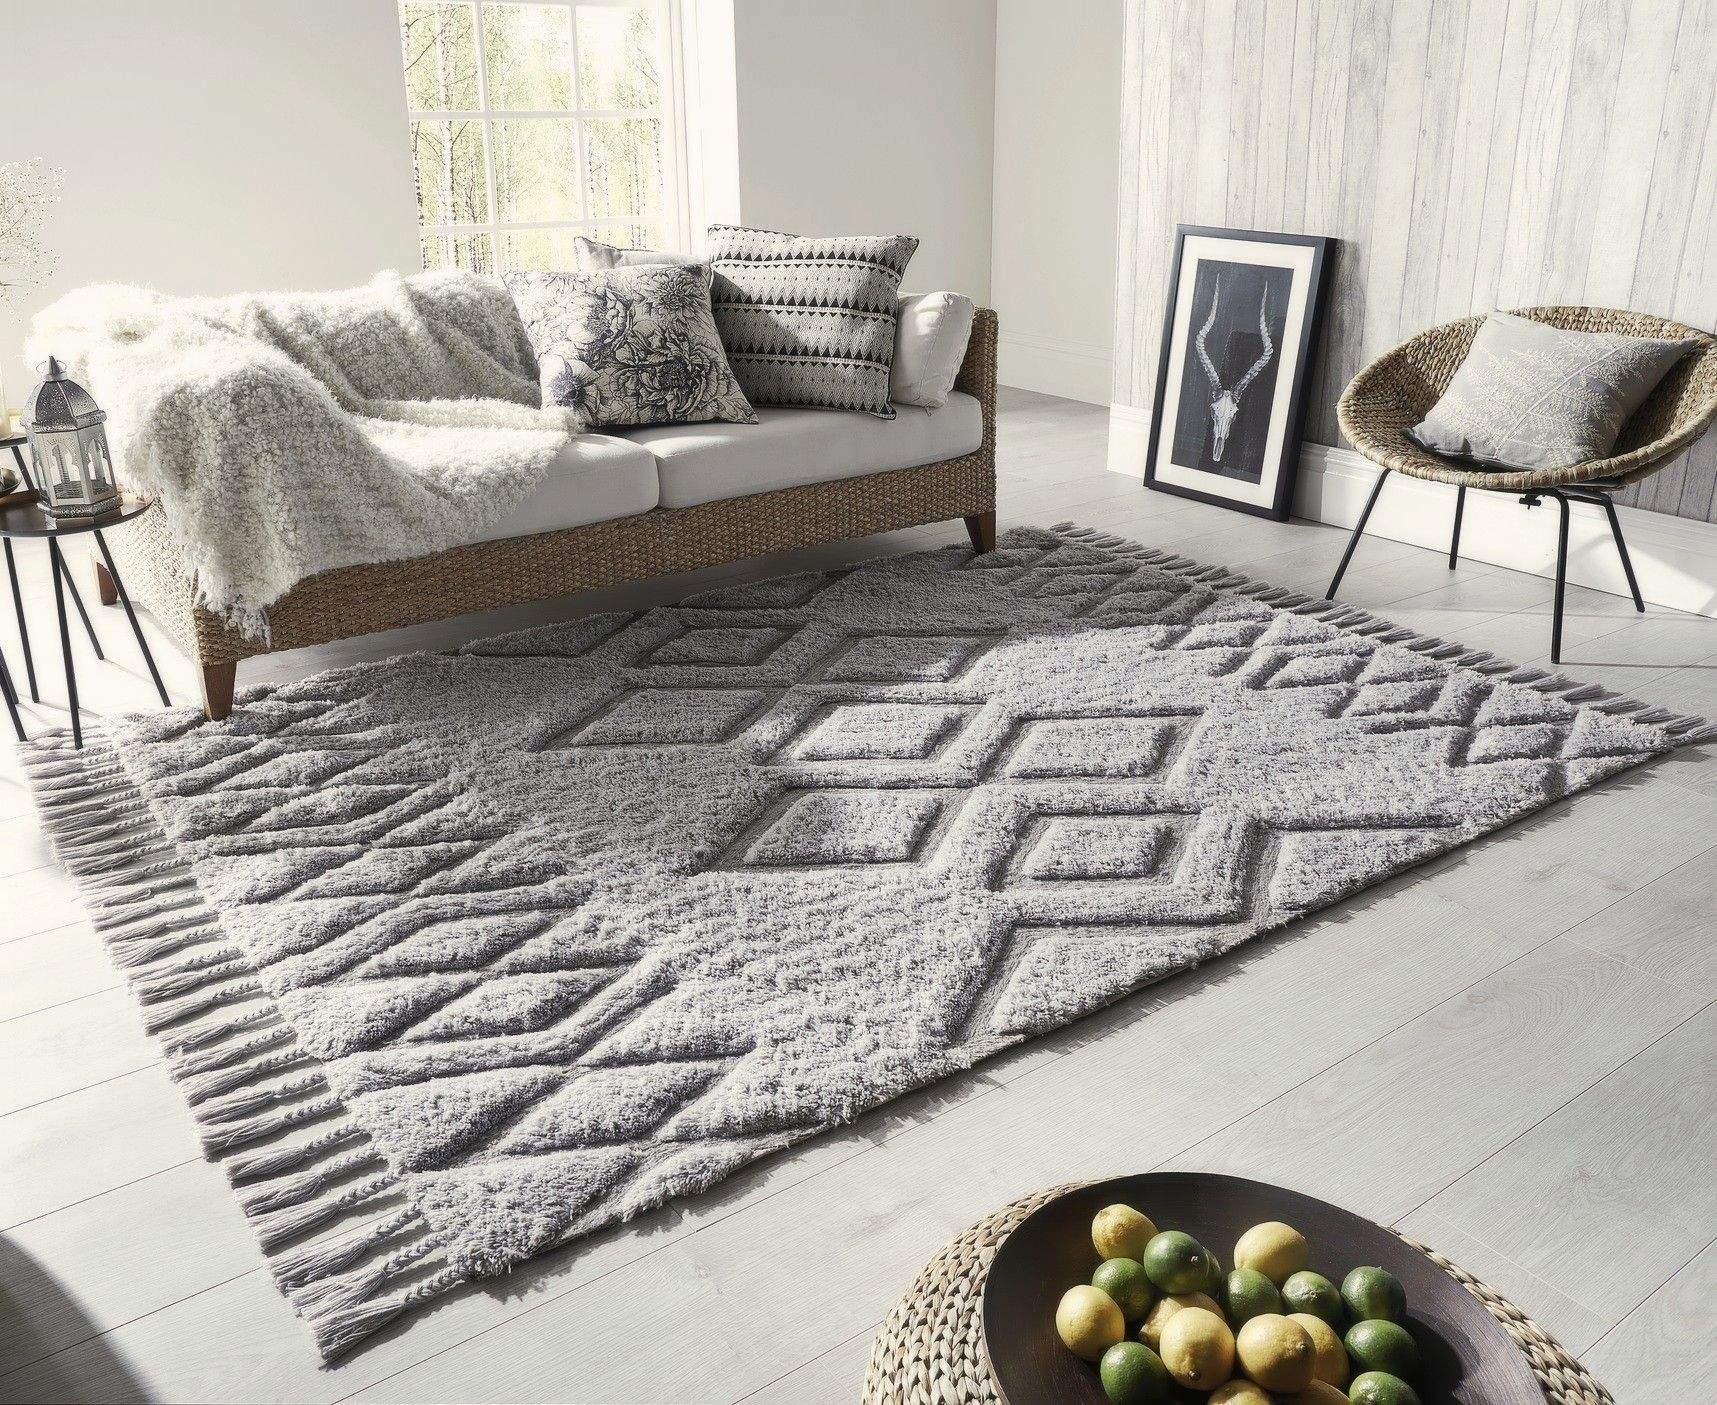 10 of the Best Grey Rugs - Large Rugs For Living Room, Bedroom and ...